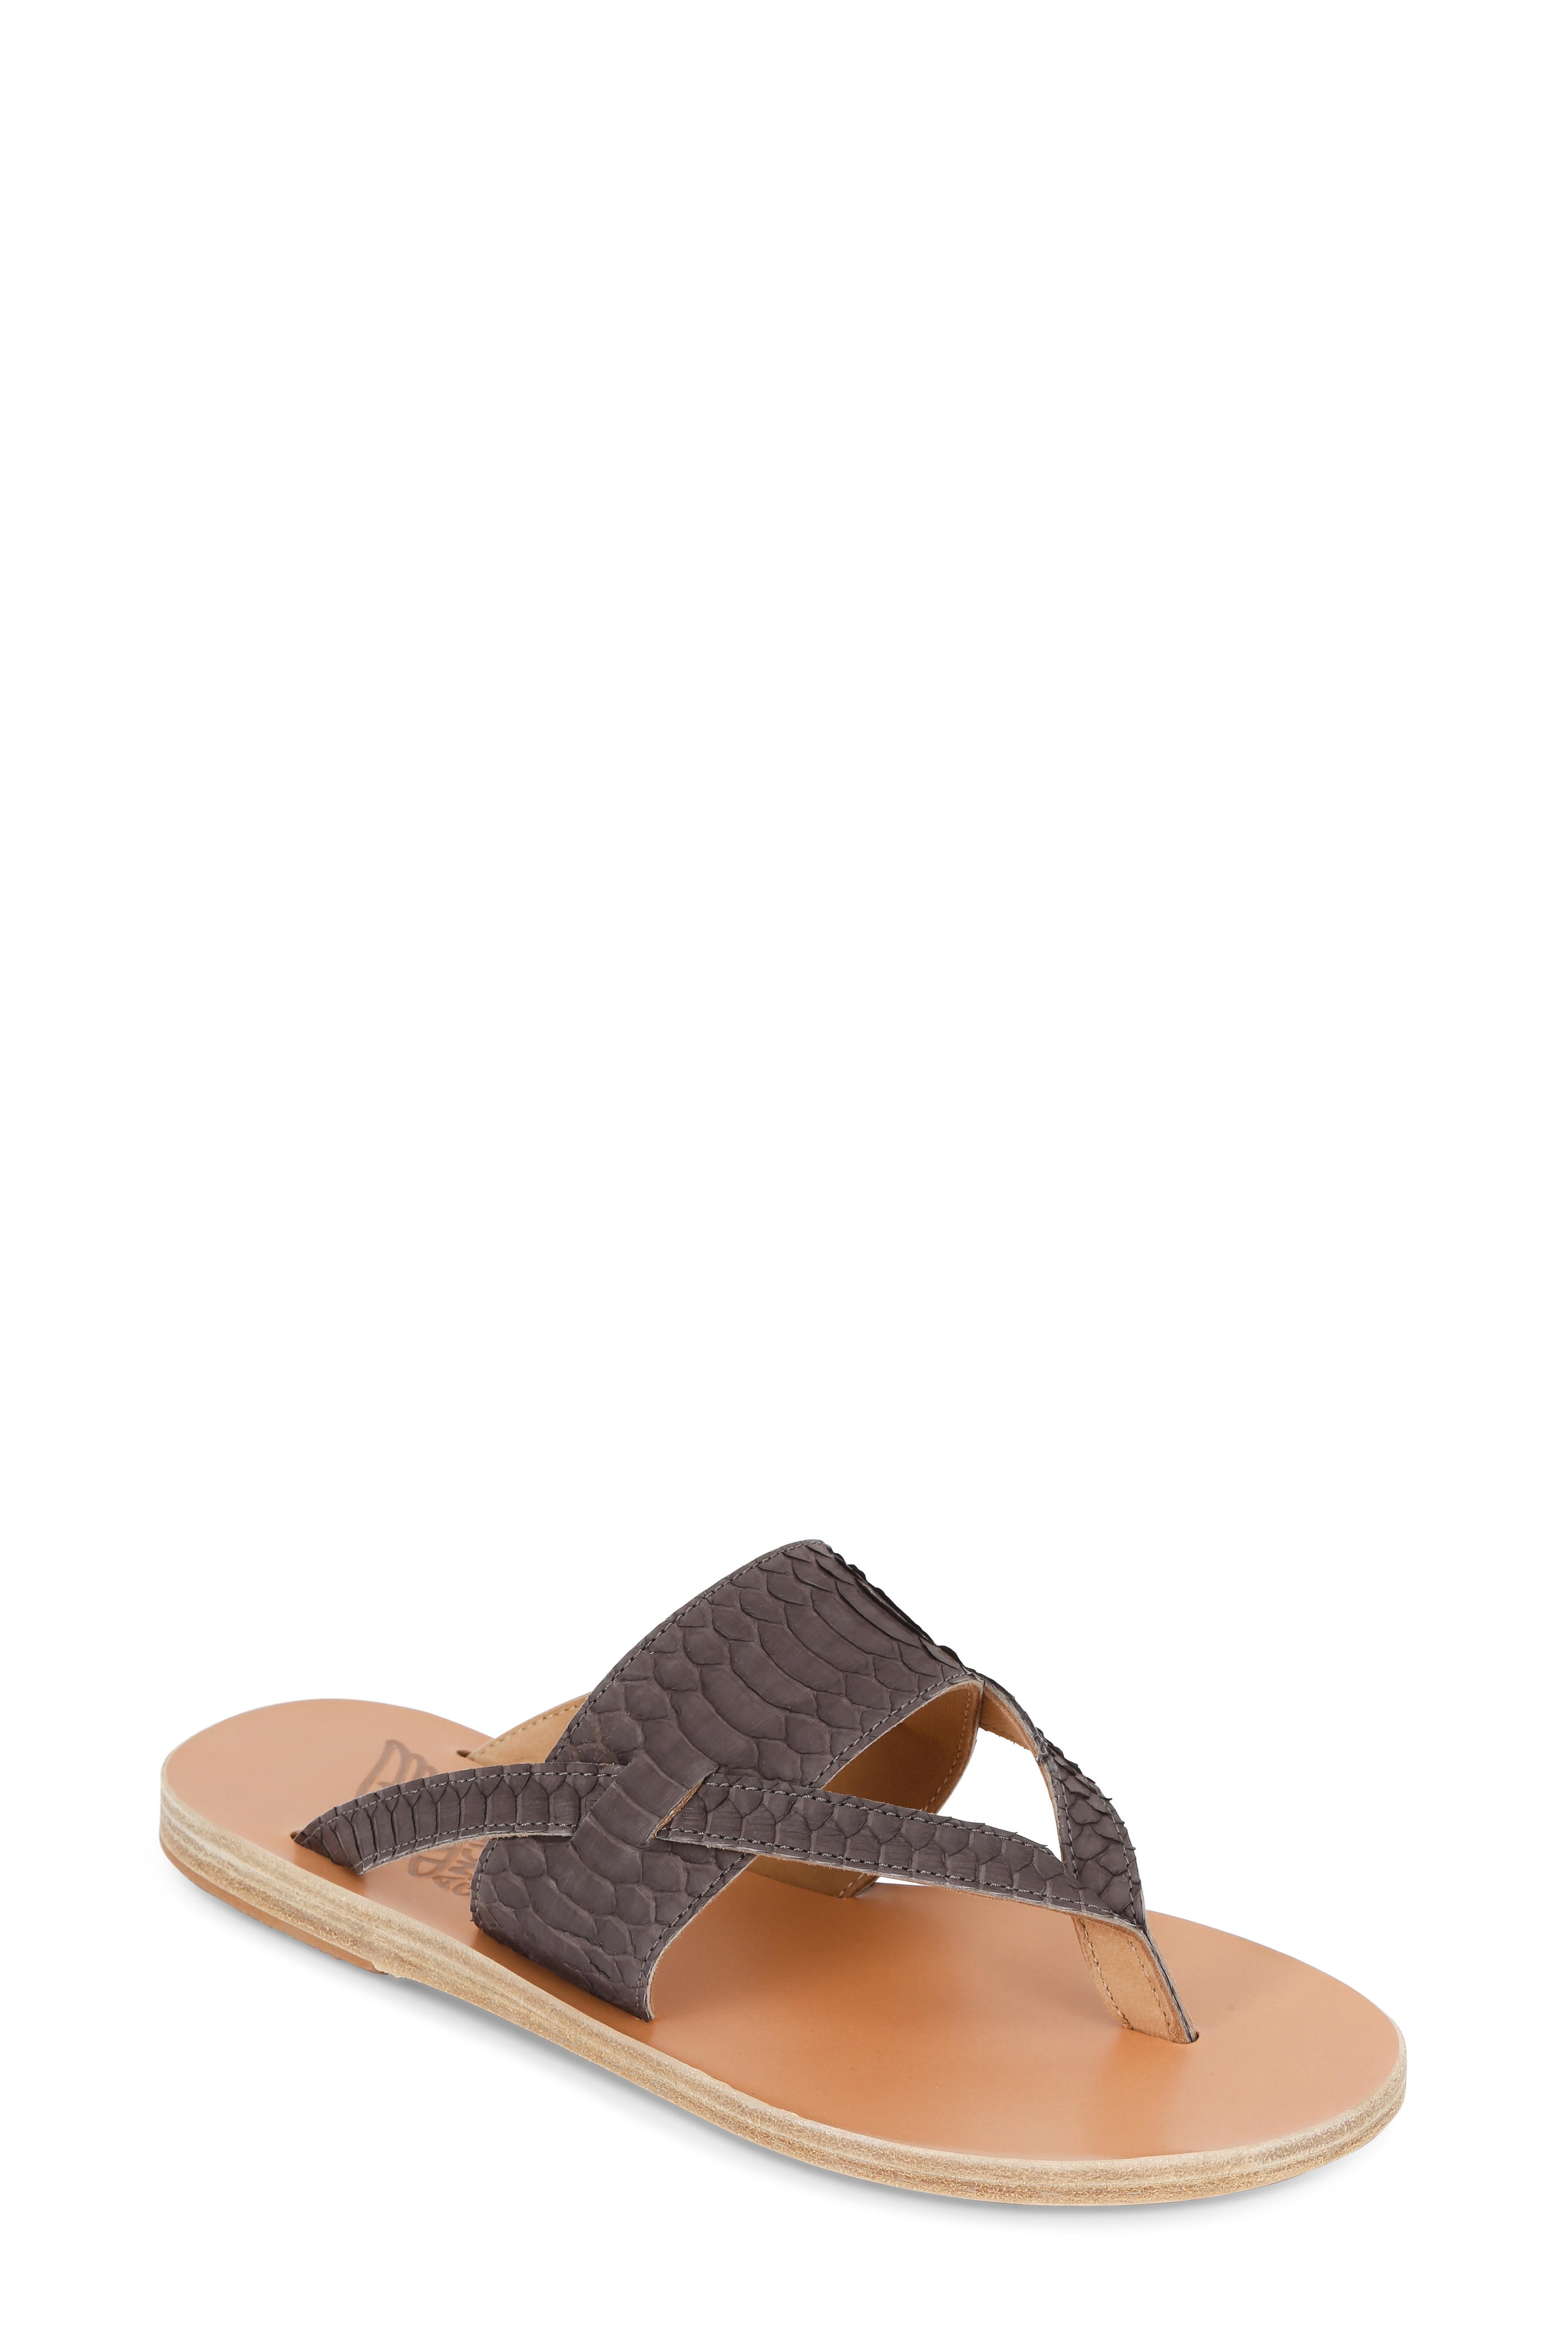 fd2a31cf7dc47 Ancient Greek Sandals - Zenobia Taupe Snake Thong Wide Band Sandal ...